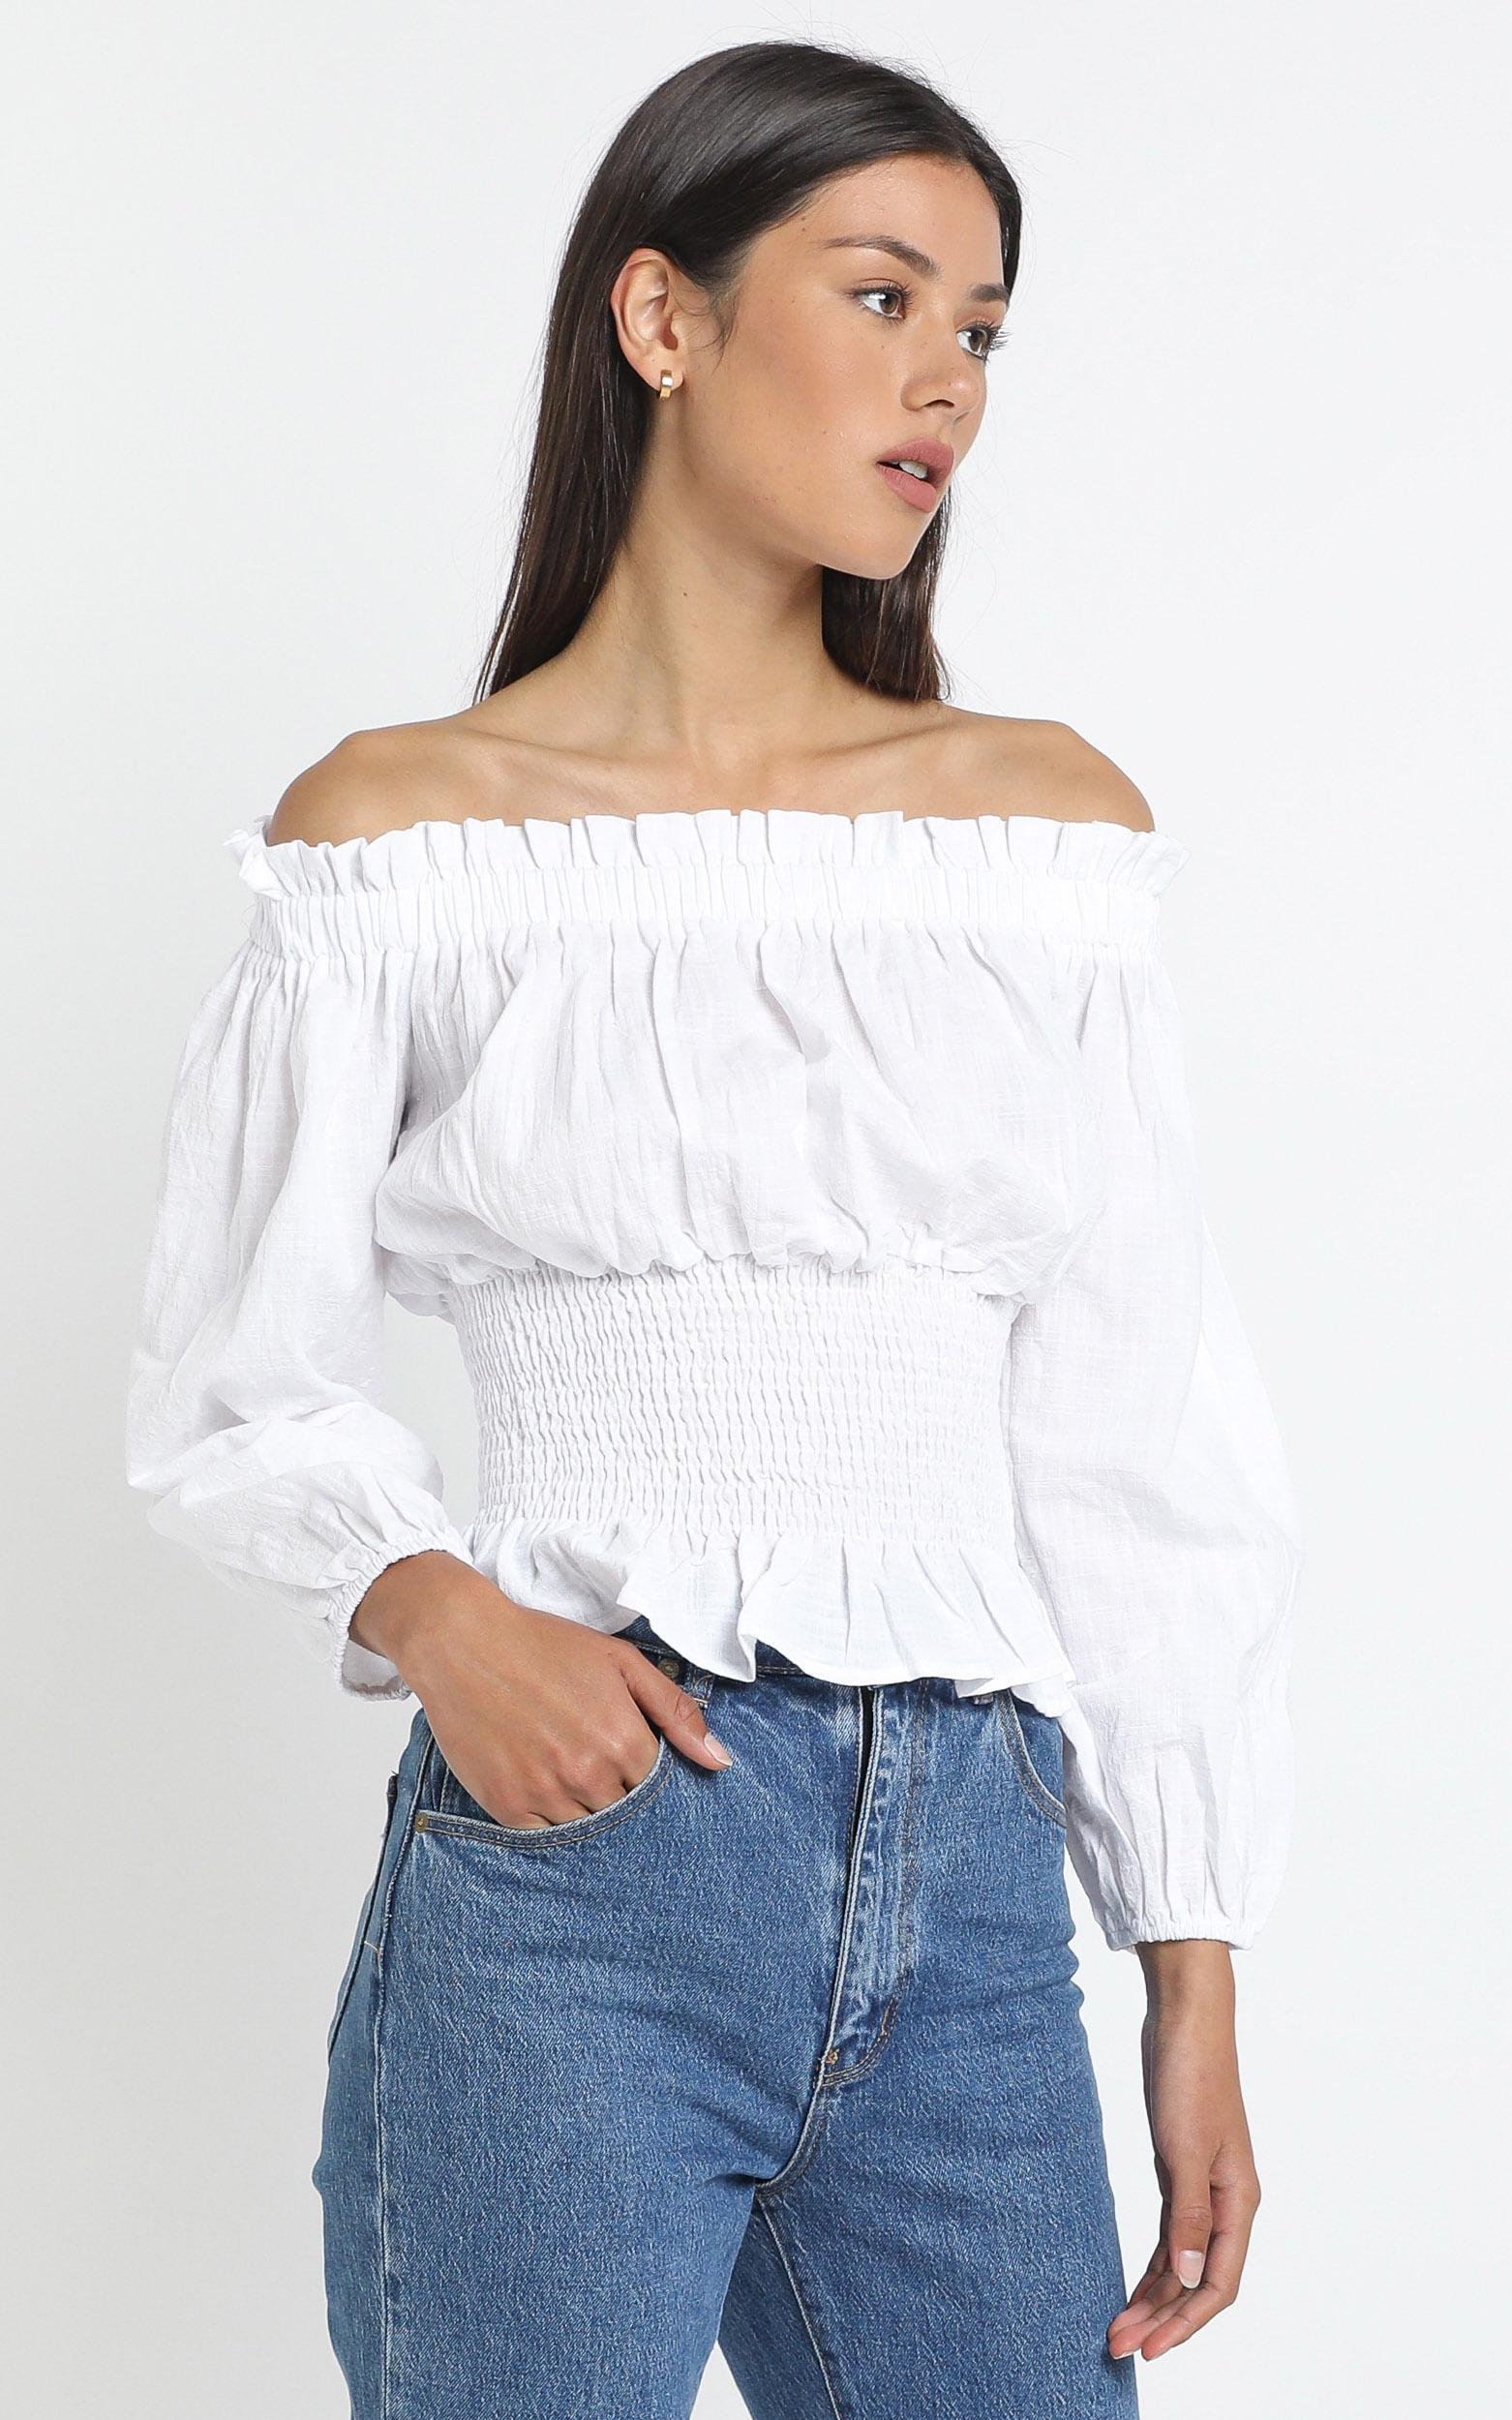 Marnie Top in White - XL, White, hi-res image number null